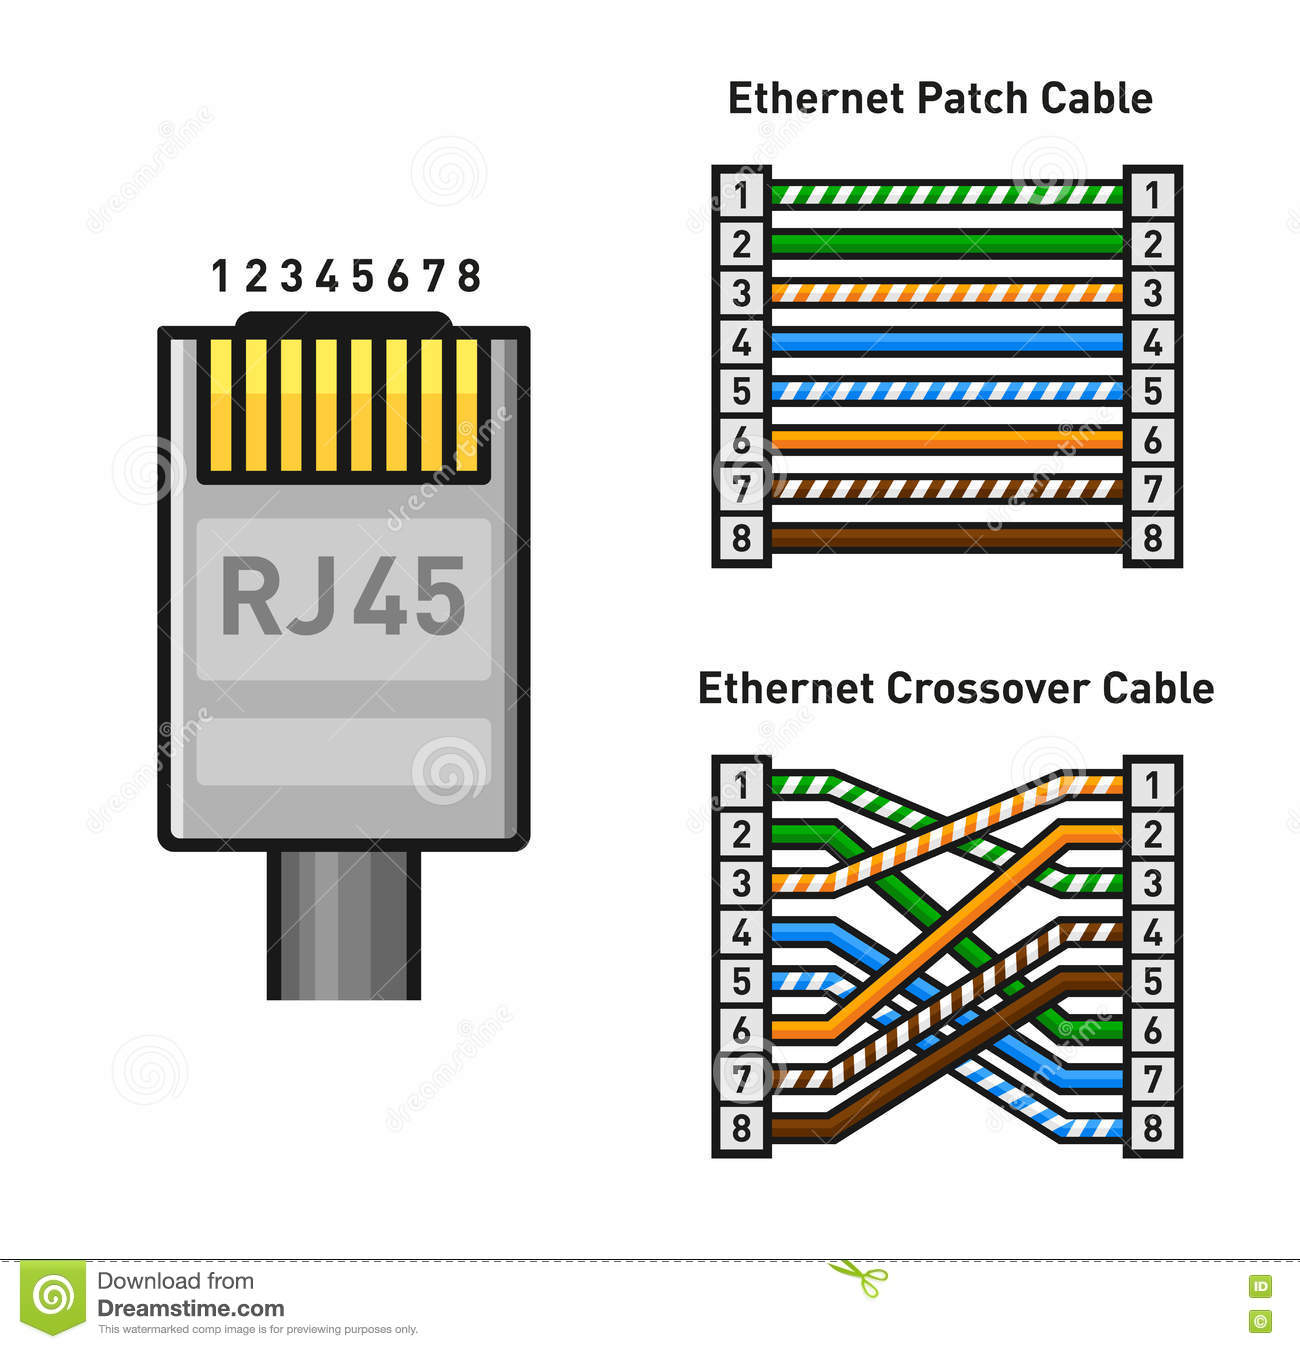 rj45 cat5e wiring diagram ford symbols db15 to